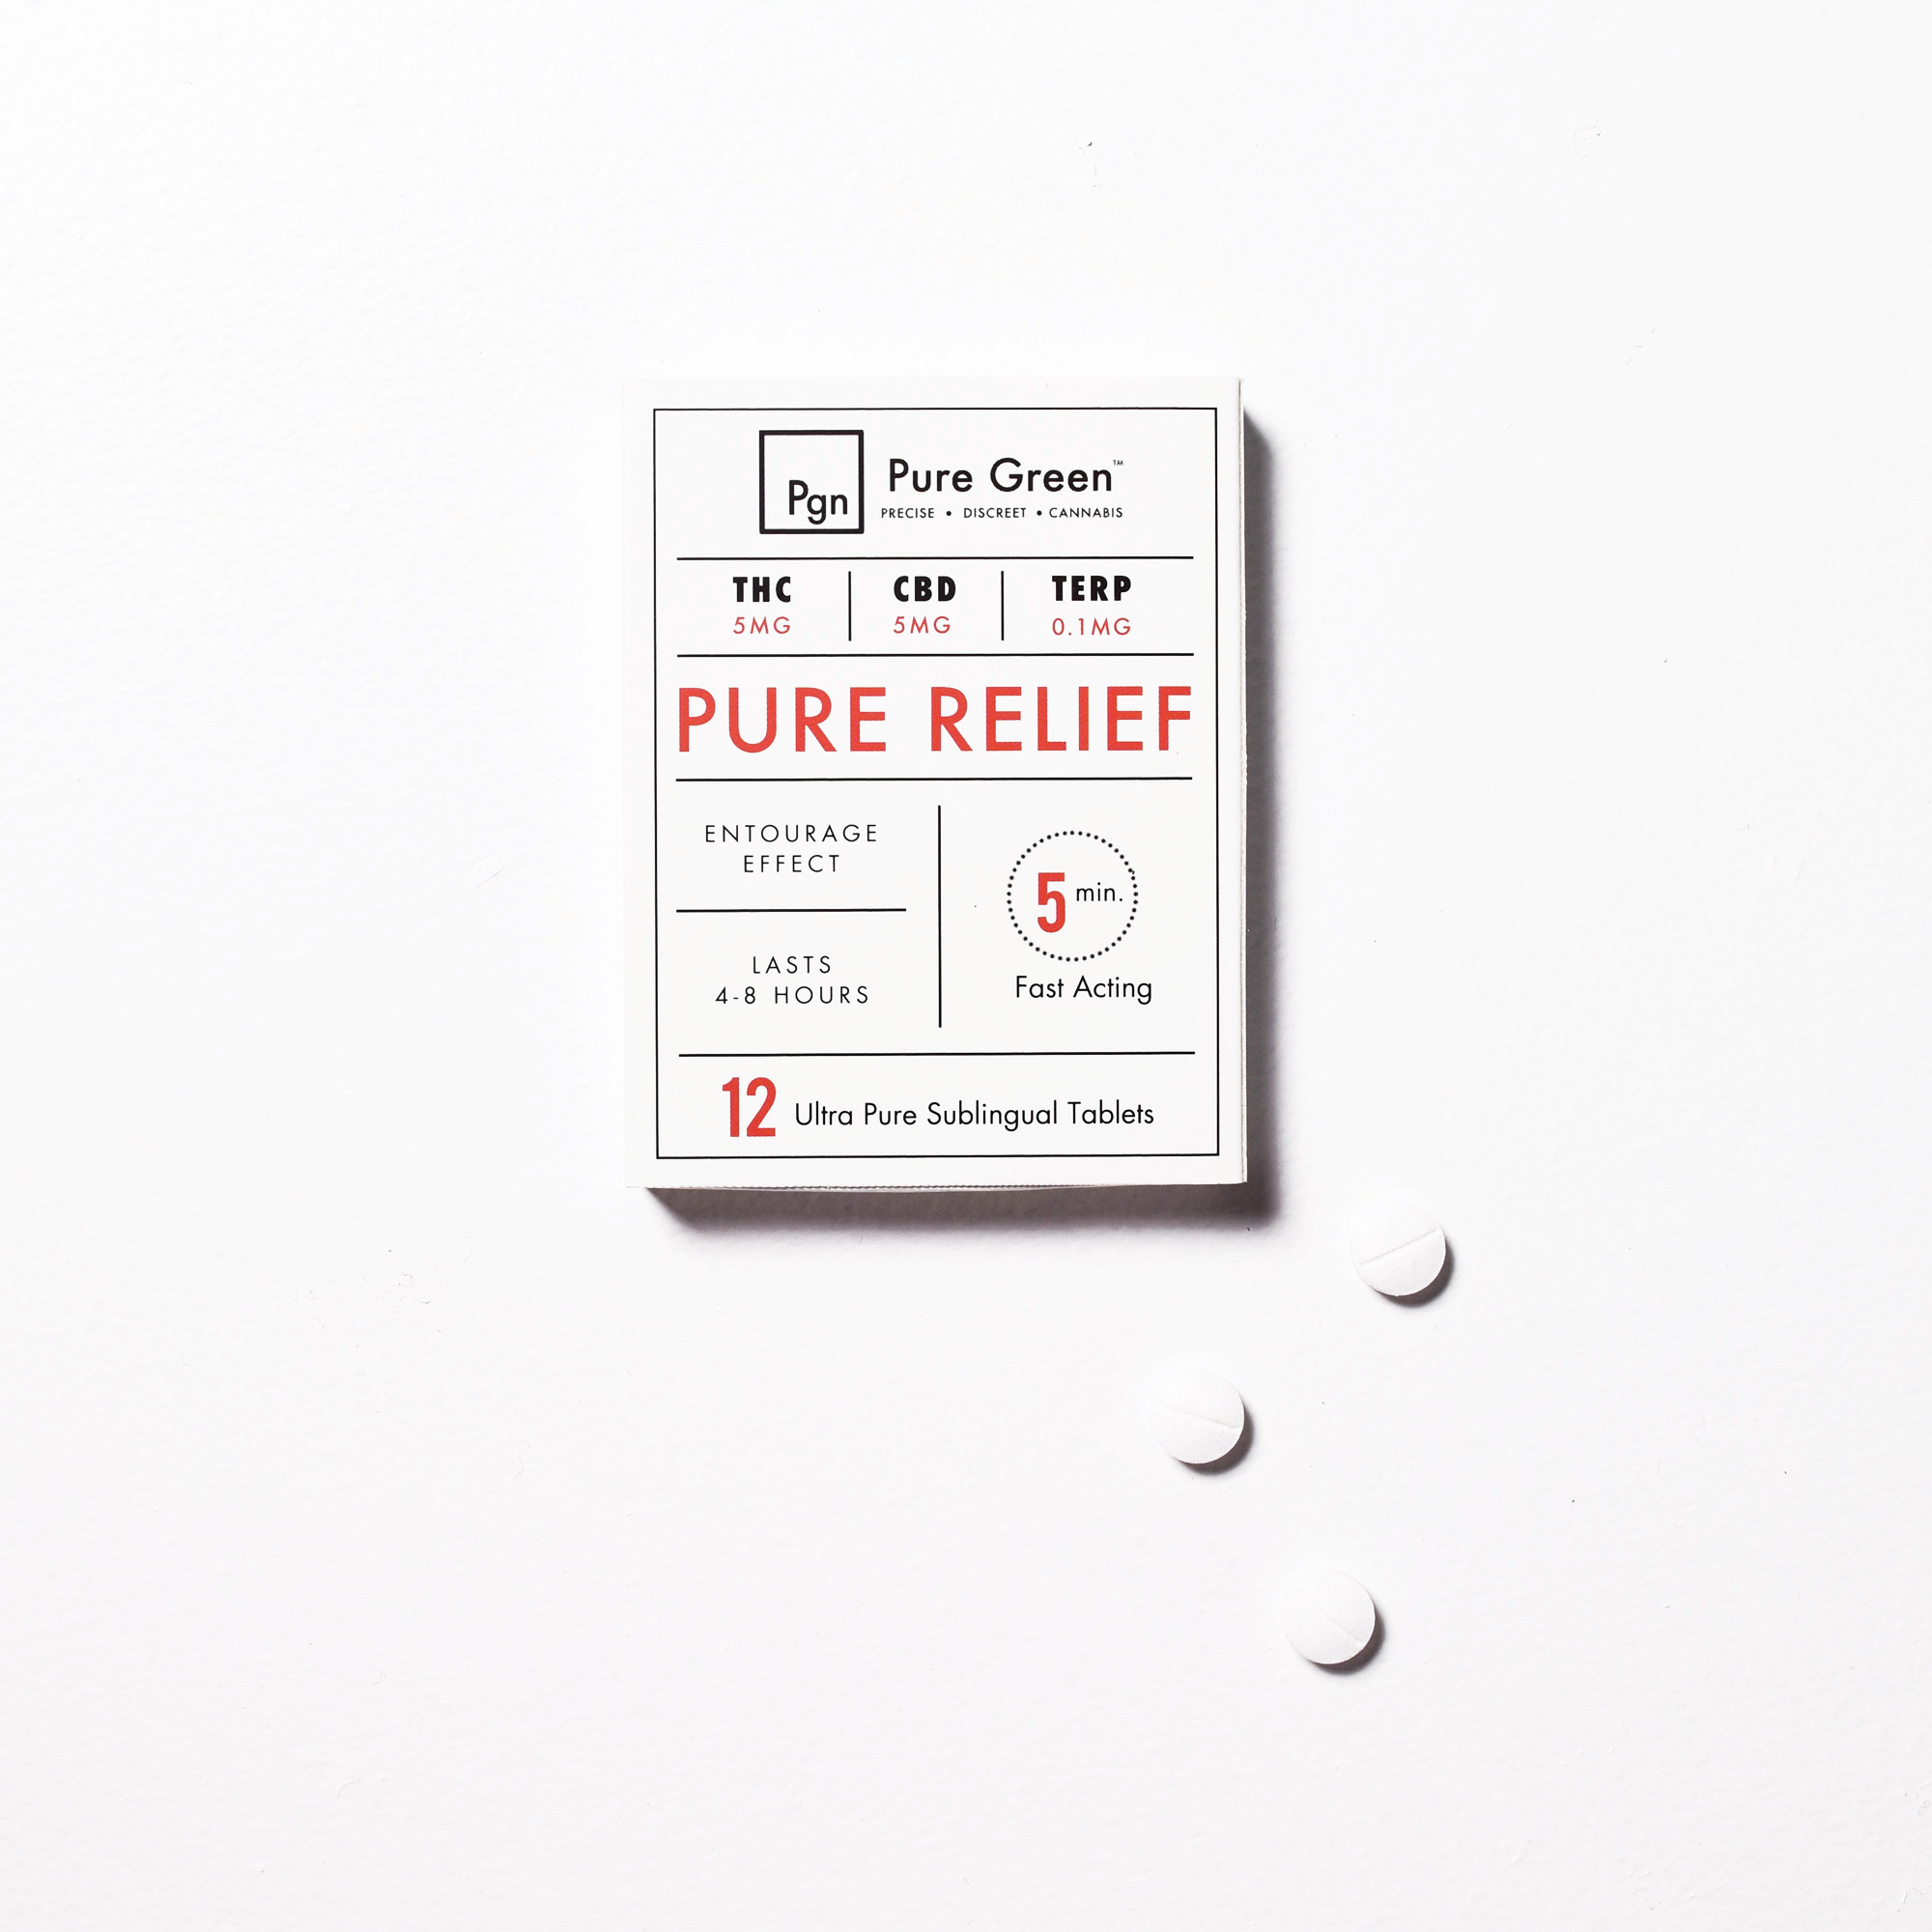 Pure Relief - Ease pain and inflammation.This perfectly balanced formula with a 1:1 THC to CBD ratio, plus a curated blend of terpenes, is designed to melt away mild to moderate pain in minutes. Each Pure Relief tablet delivers a precise, fast-acting dose of all natural pain relief.Each tablet contains:5 mg THC / 5 mg CBD / 0.1 mg Curated Terpenes<< Back to Sublingual Tablets